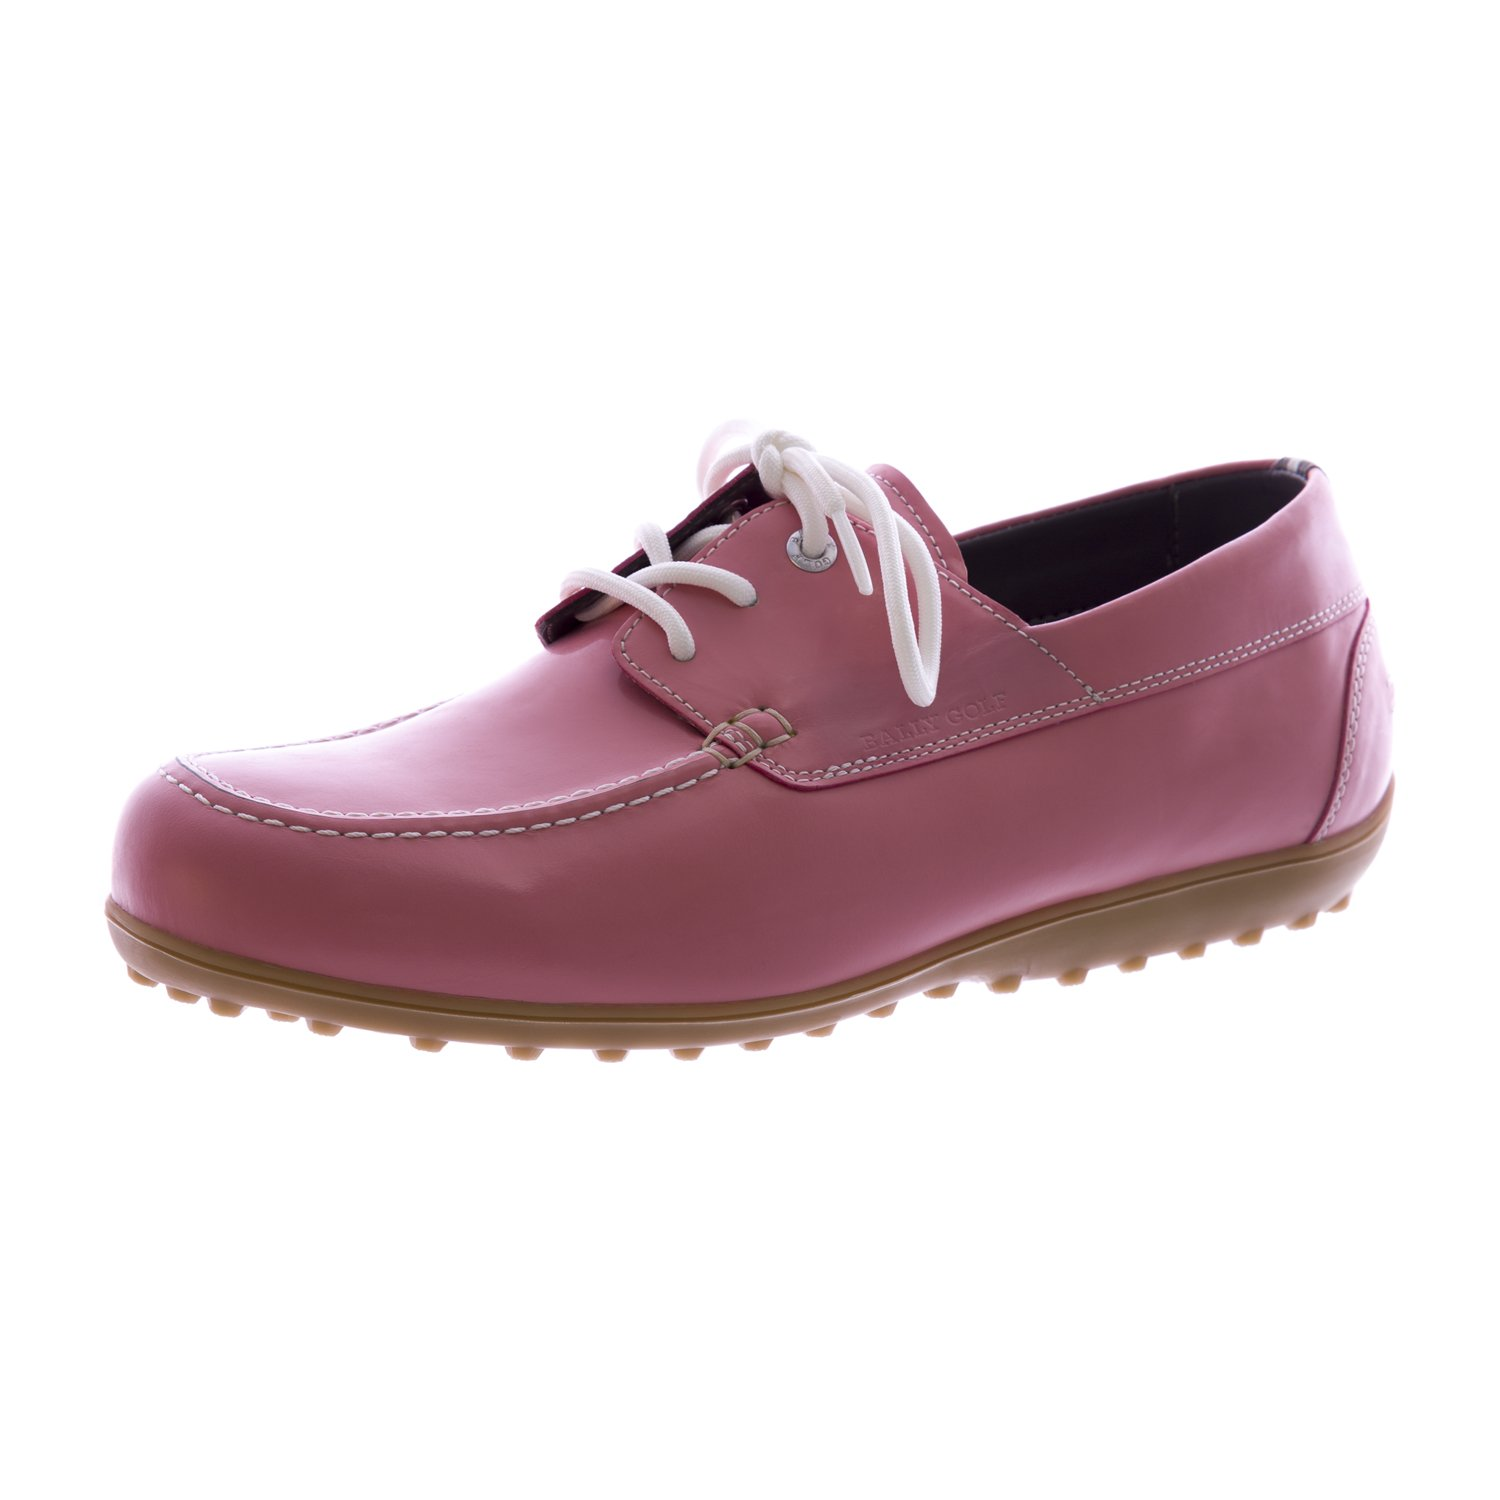 BALLY Golf Women Mocc Plus Golf Shoes 9 Pink by BALLY (Image #1)